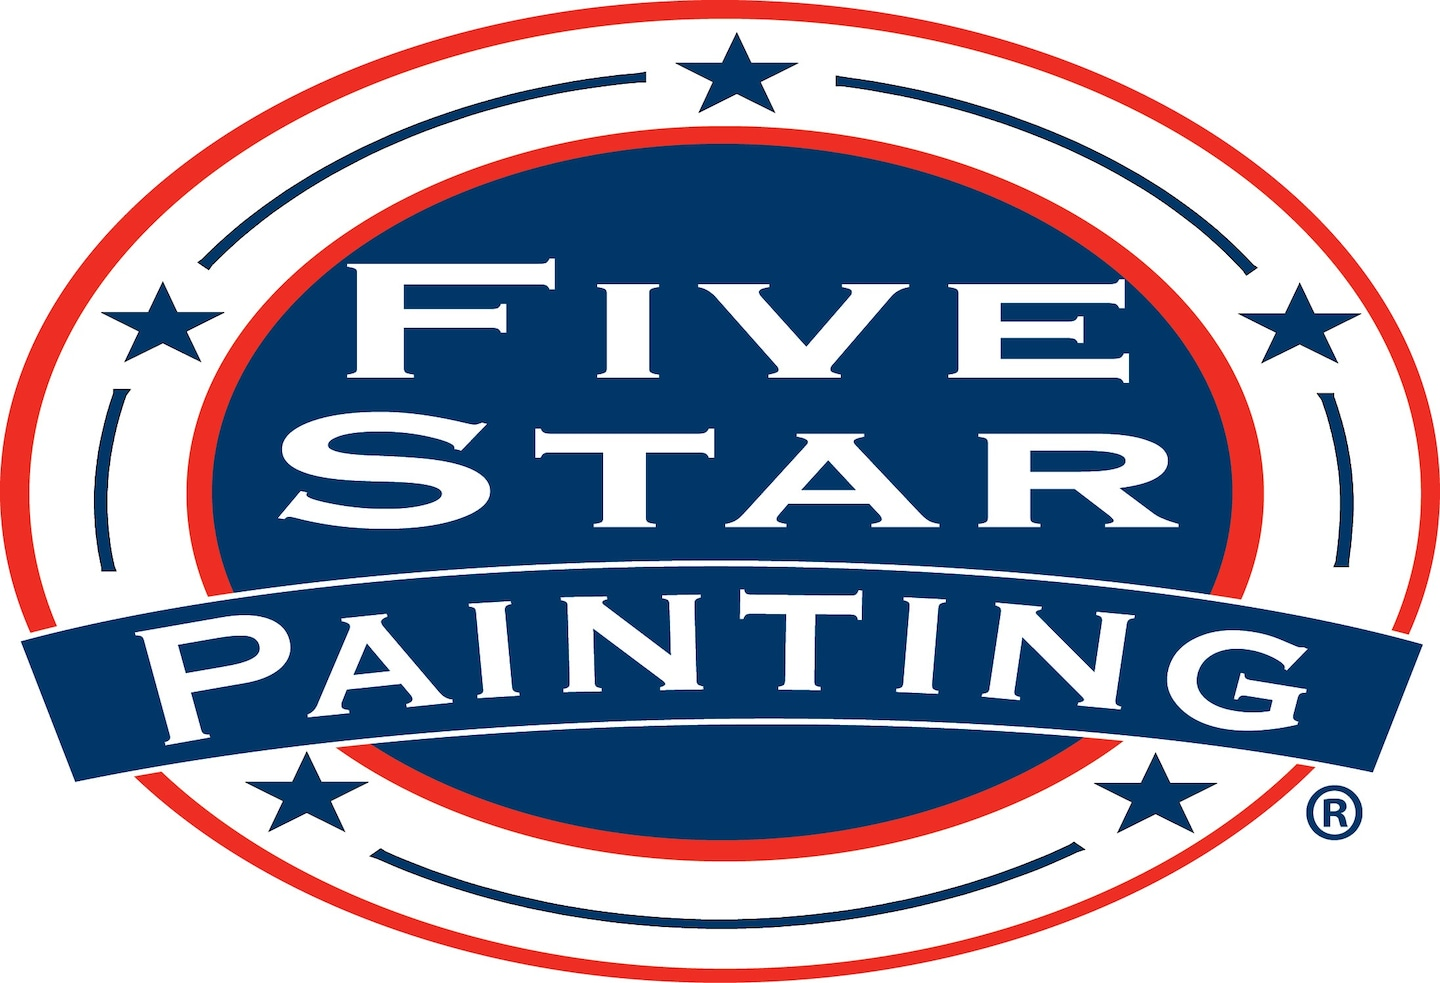 Five Star Painting of South Bend